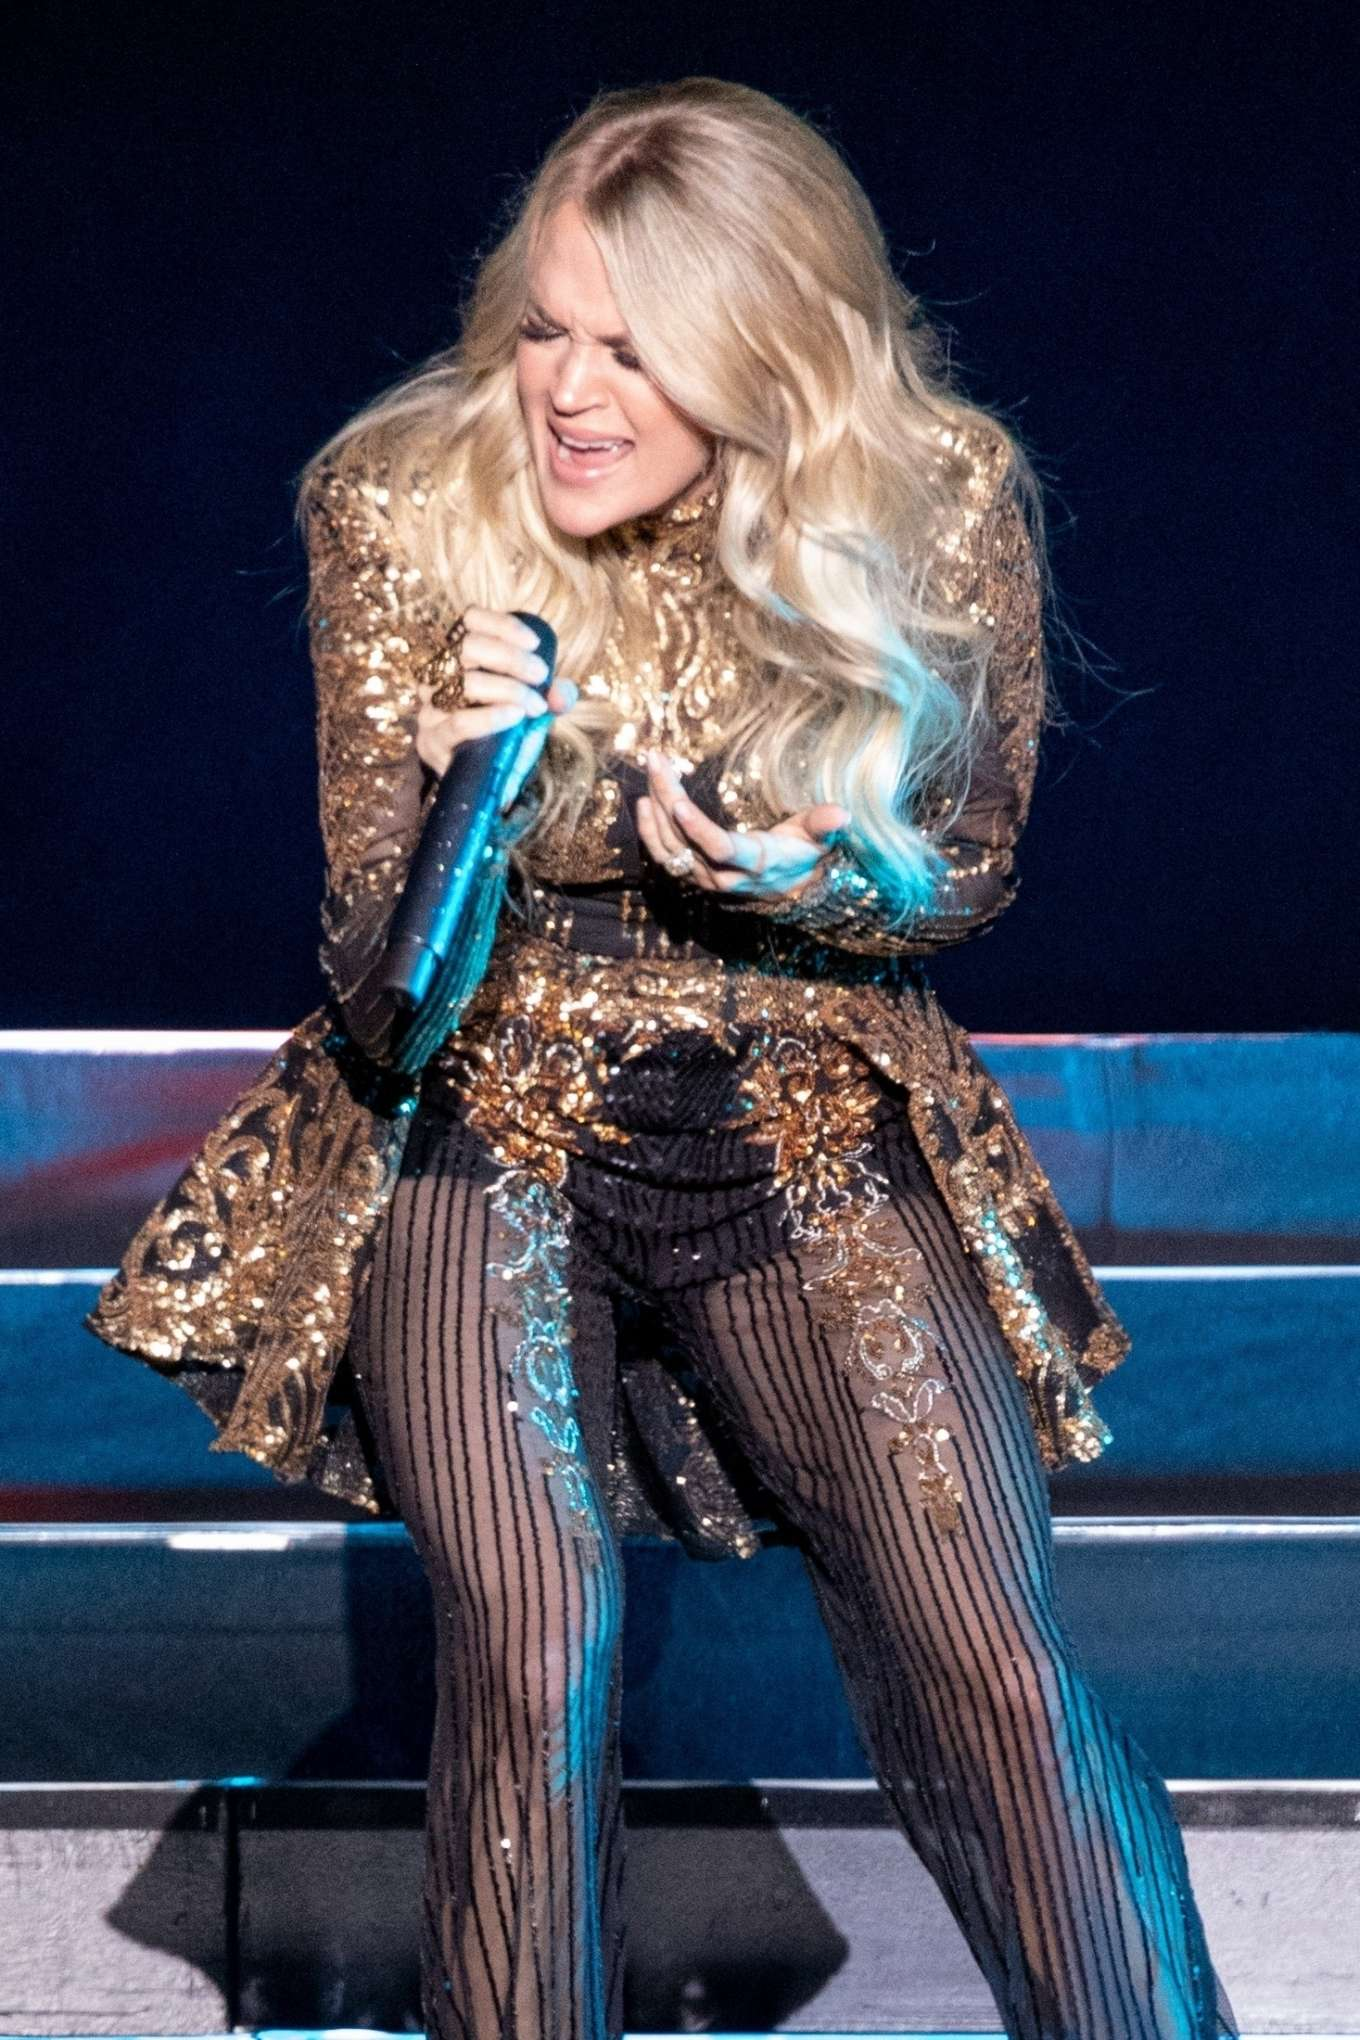 Carrie Underwood - Performing at Resorts World Arena in Birmingham